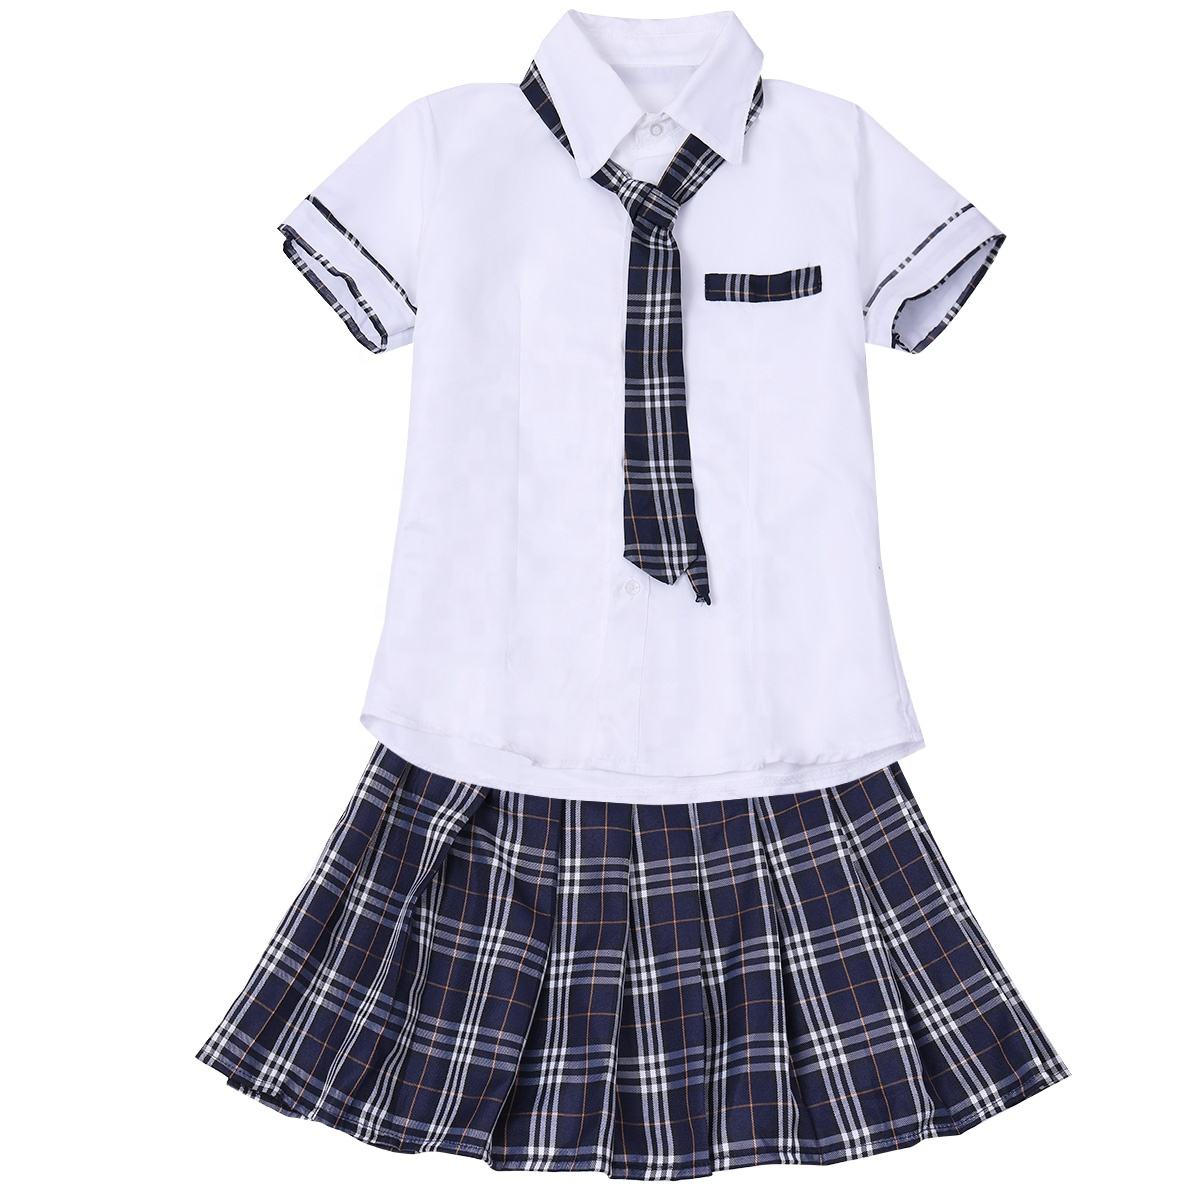 Vrouwen En Meisjes School Uniformen Sexy Collage Student Sailor <span class=keywords><strong>Party</strong></span> Cosplay Kostuum Korte Mouw Shirt Met Plaid Rok Tie <span class=keywords><strong>Set</strong></span>